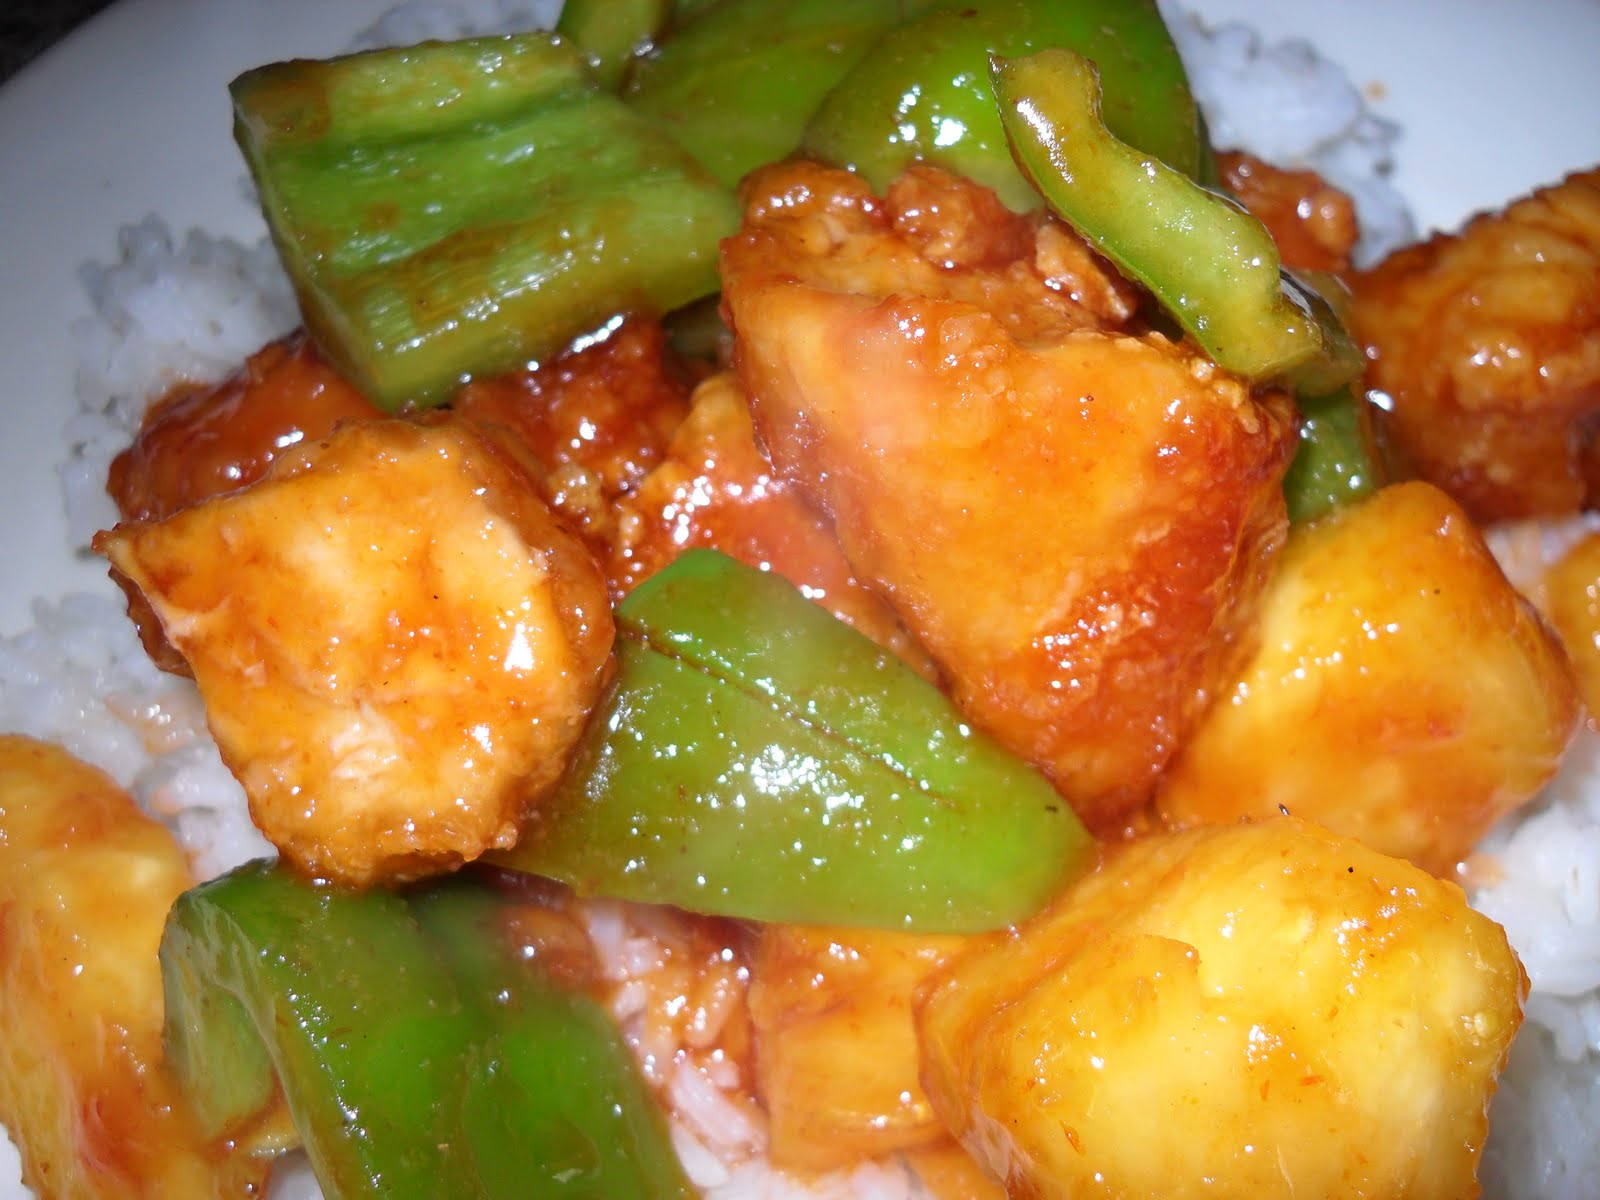 ... sweet and sour pork sweet and sour pork 3 griff s sweet and sour pork